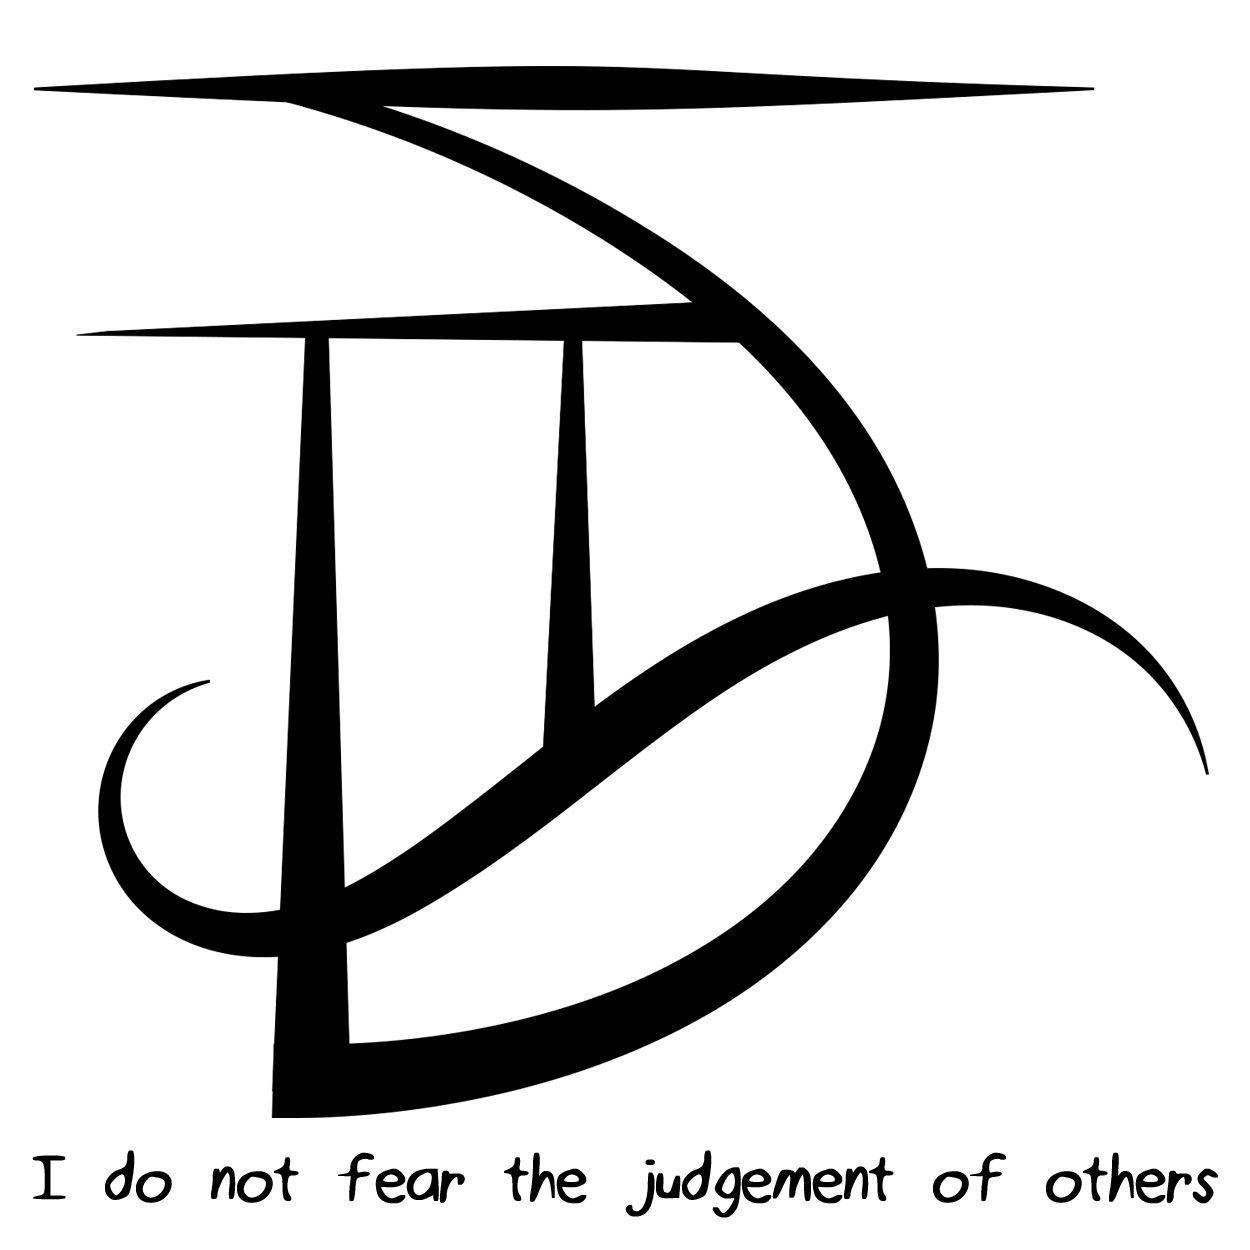 I do not fear the judgement of others sigils1 pinterest sigil an inscribed or painted symbol considered to have magical power i do not fear the judgement of others buycottarizona